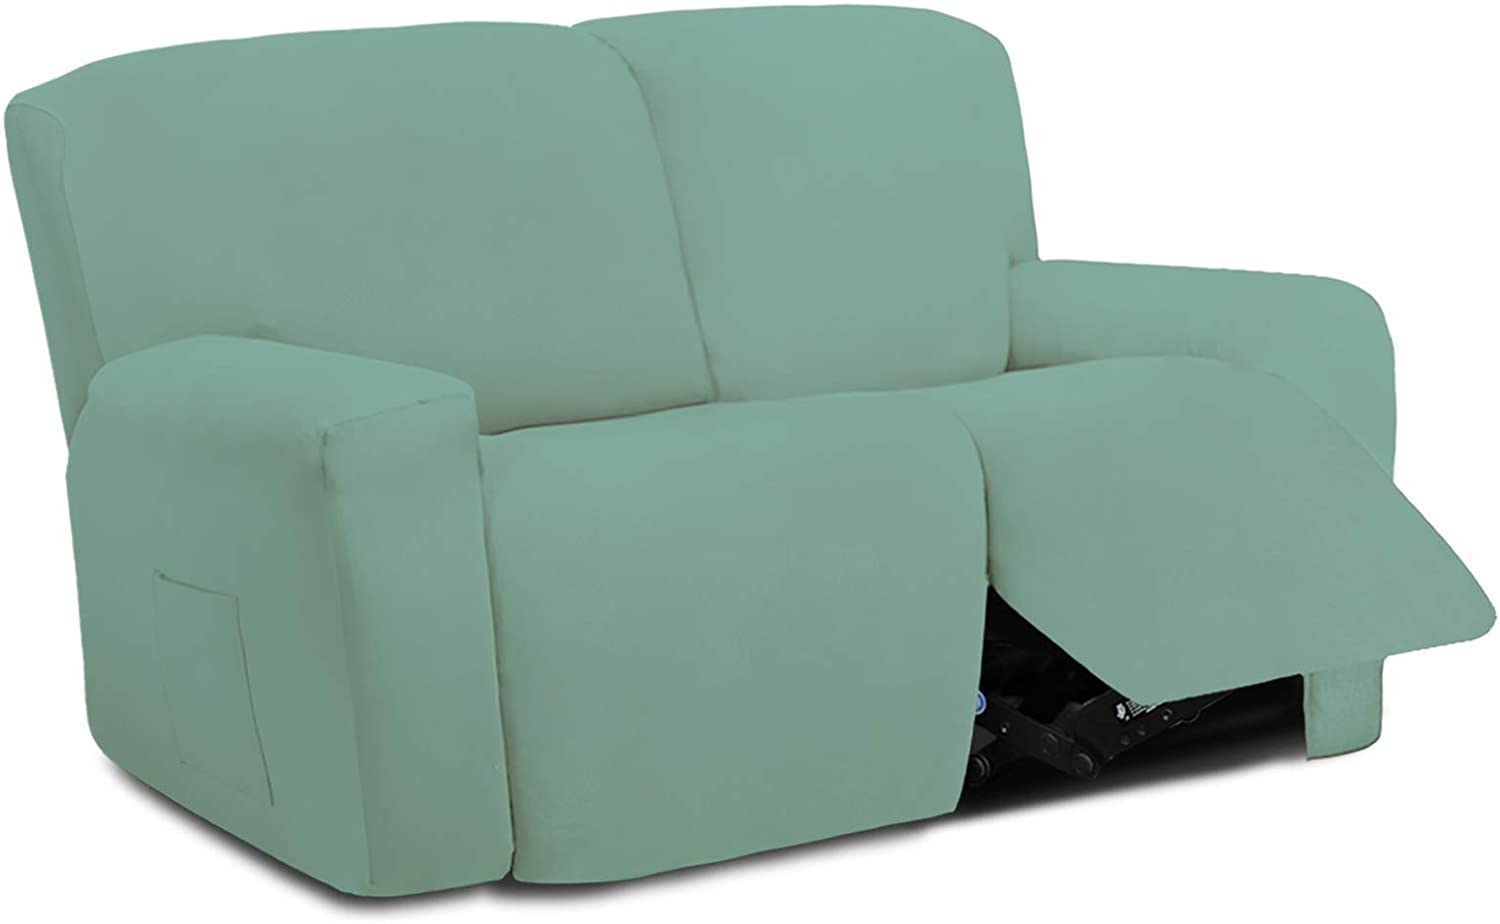 Easy-Going 6 Pieces Microfiber Stretch Sectional Recliner Sofa Slipcover Soft Fitted Fleece 2 Seats Couch Cover Washable Furniture Protector with Elasticity for Kids Pet(Recliner Loveseat, Cyan)